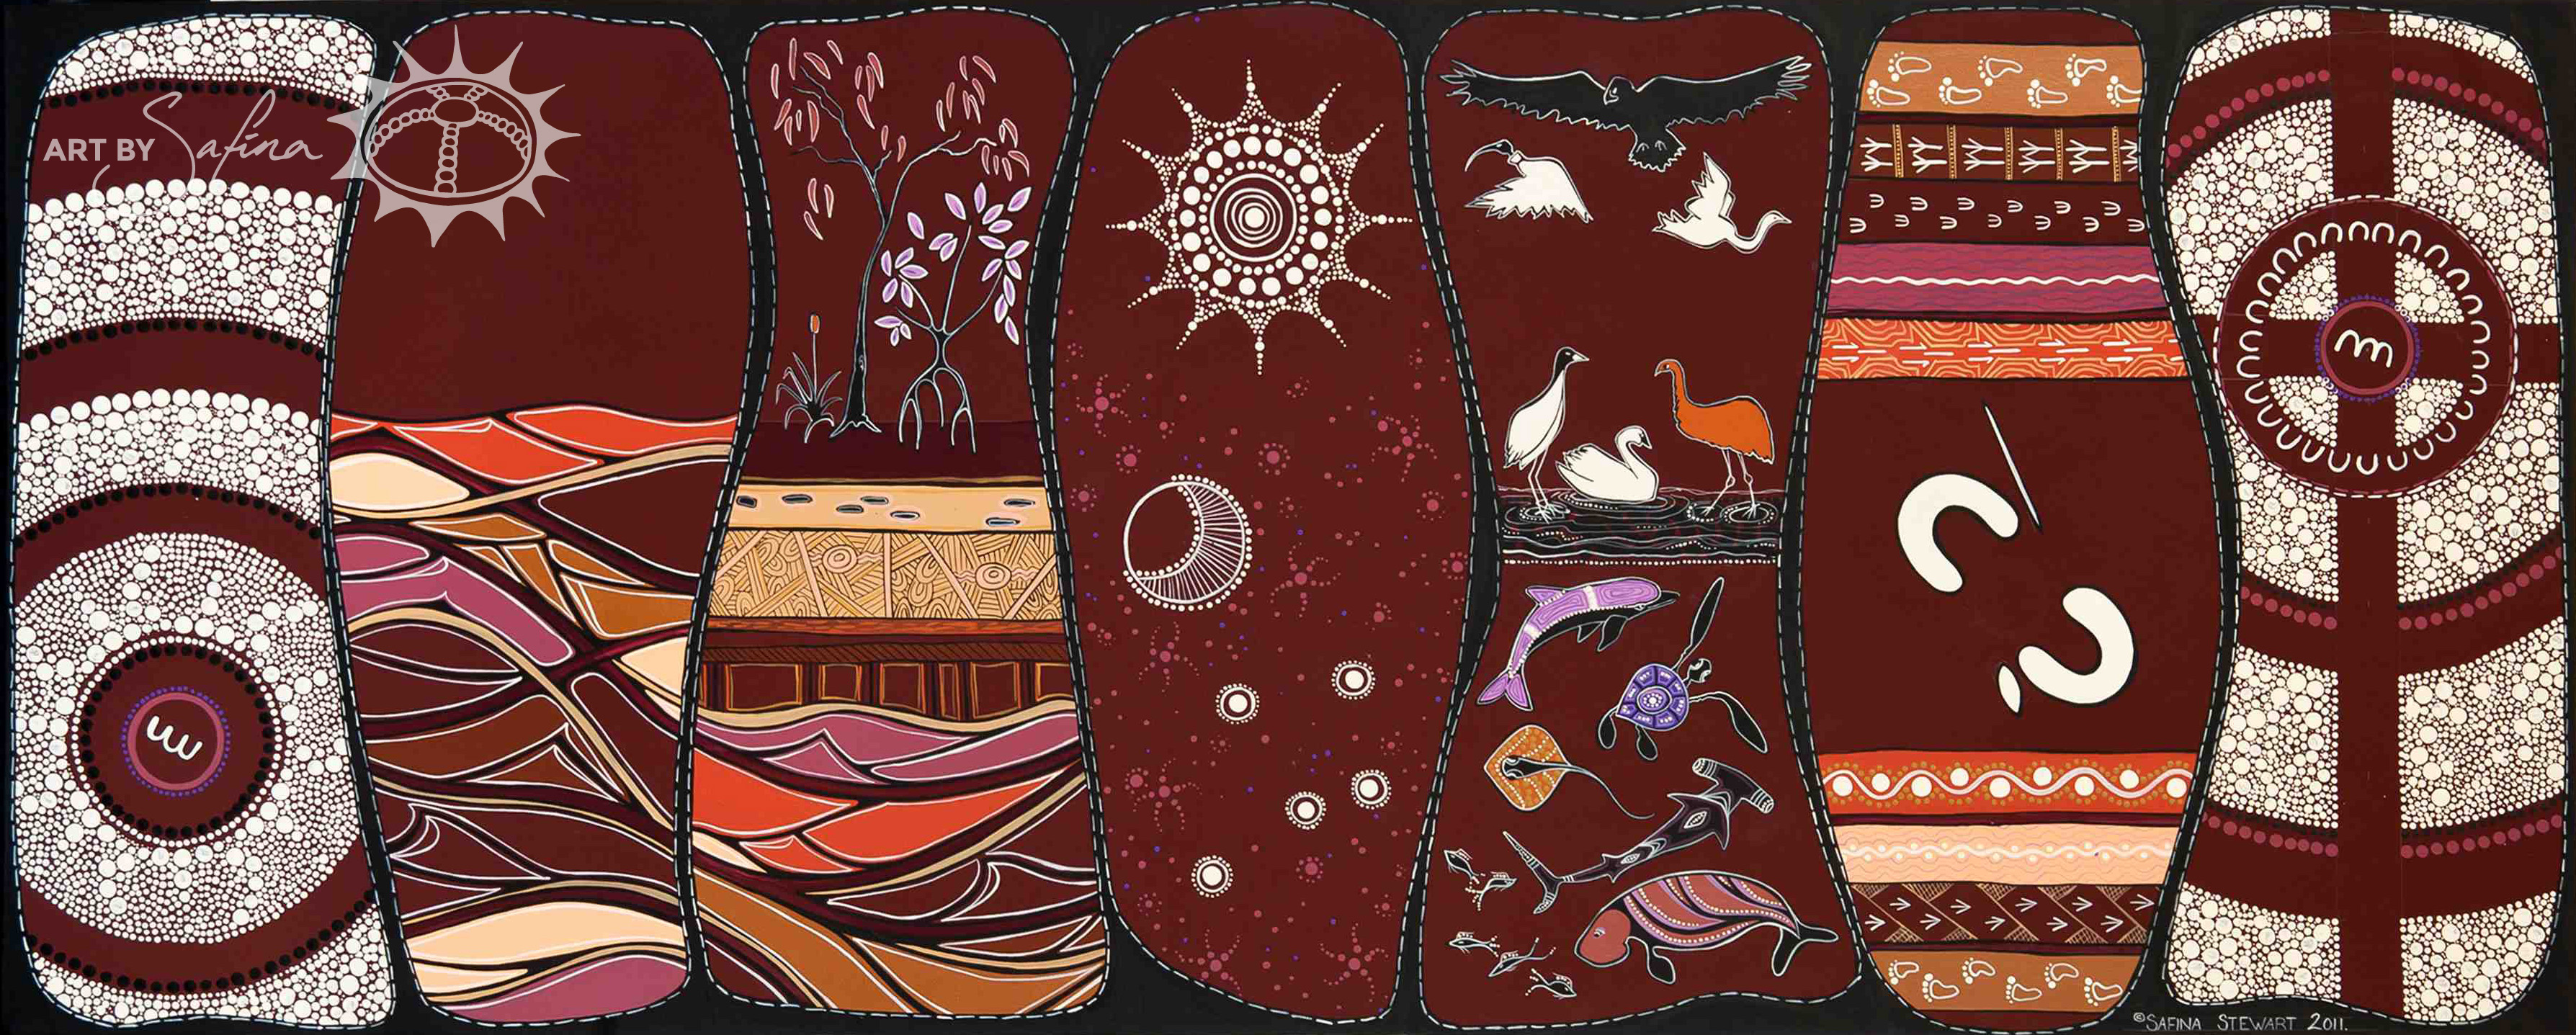 art by safina contemporary aboriginal and torres strait islander art